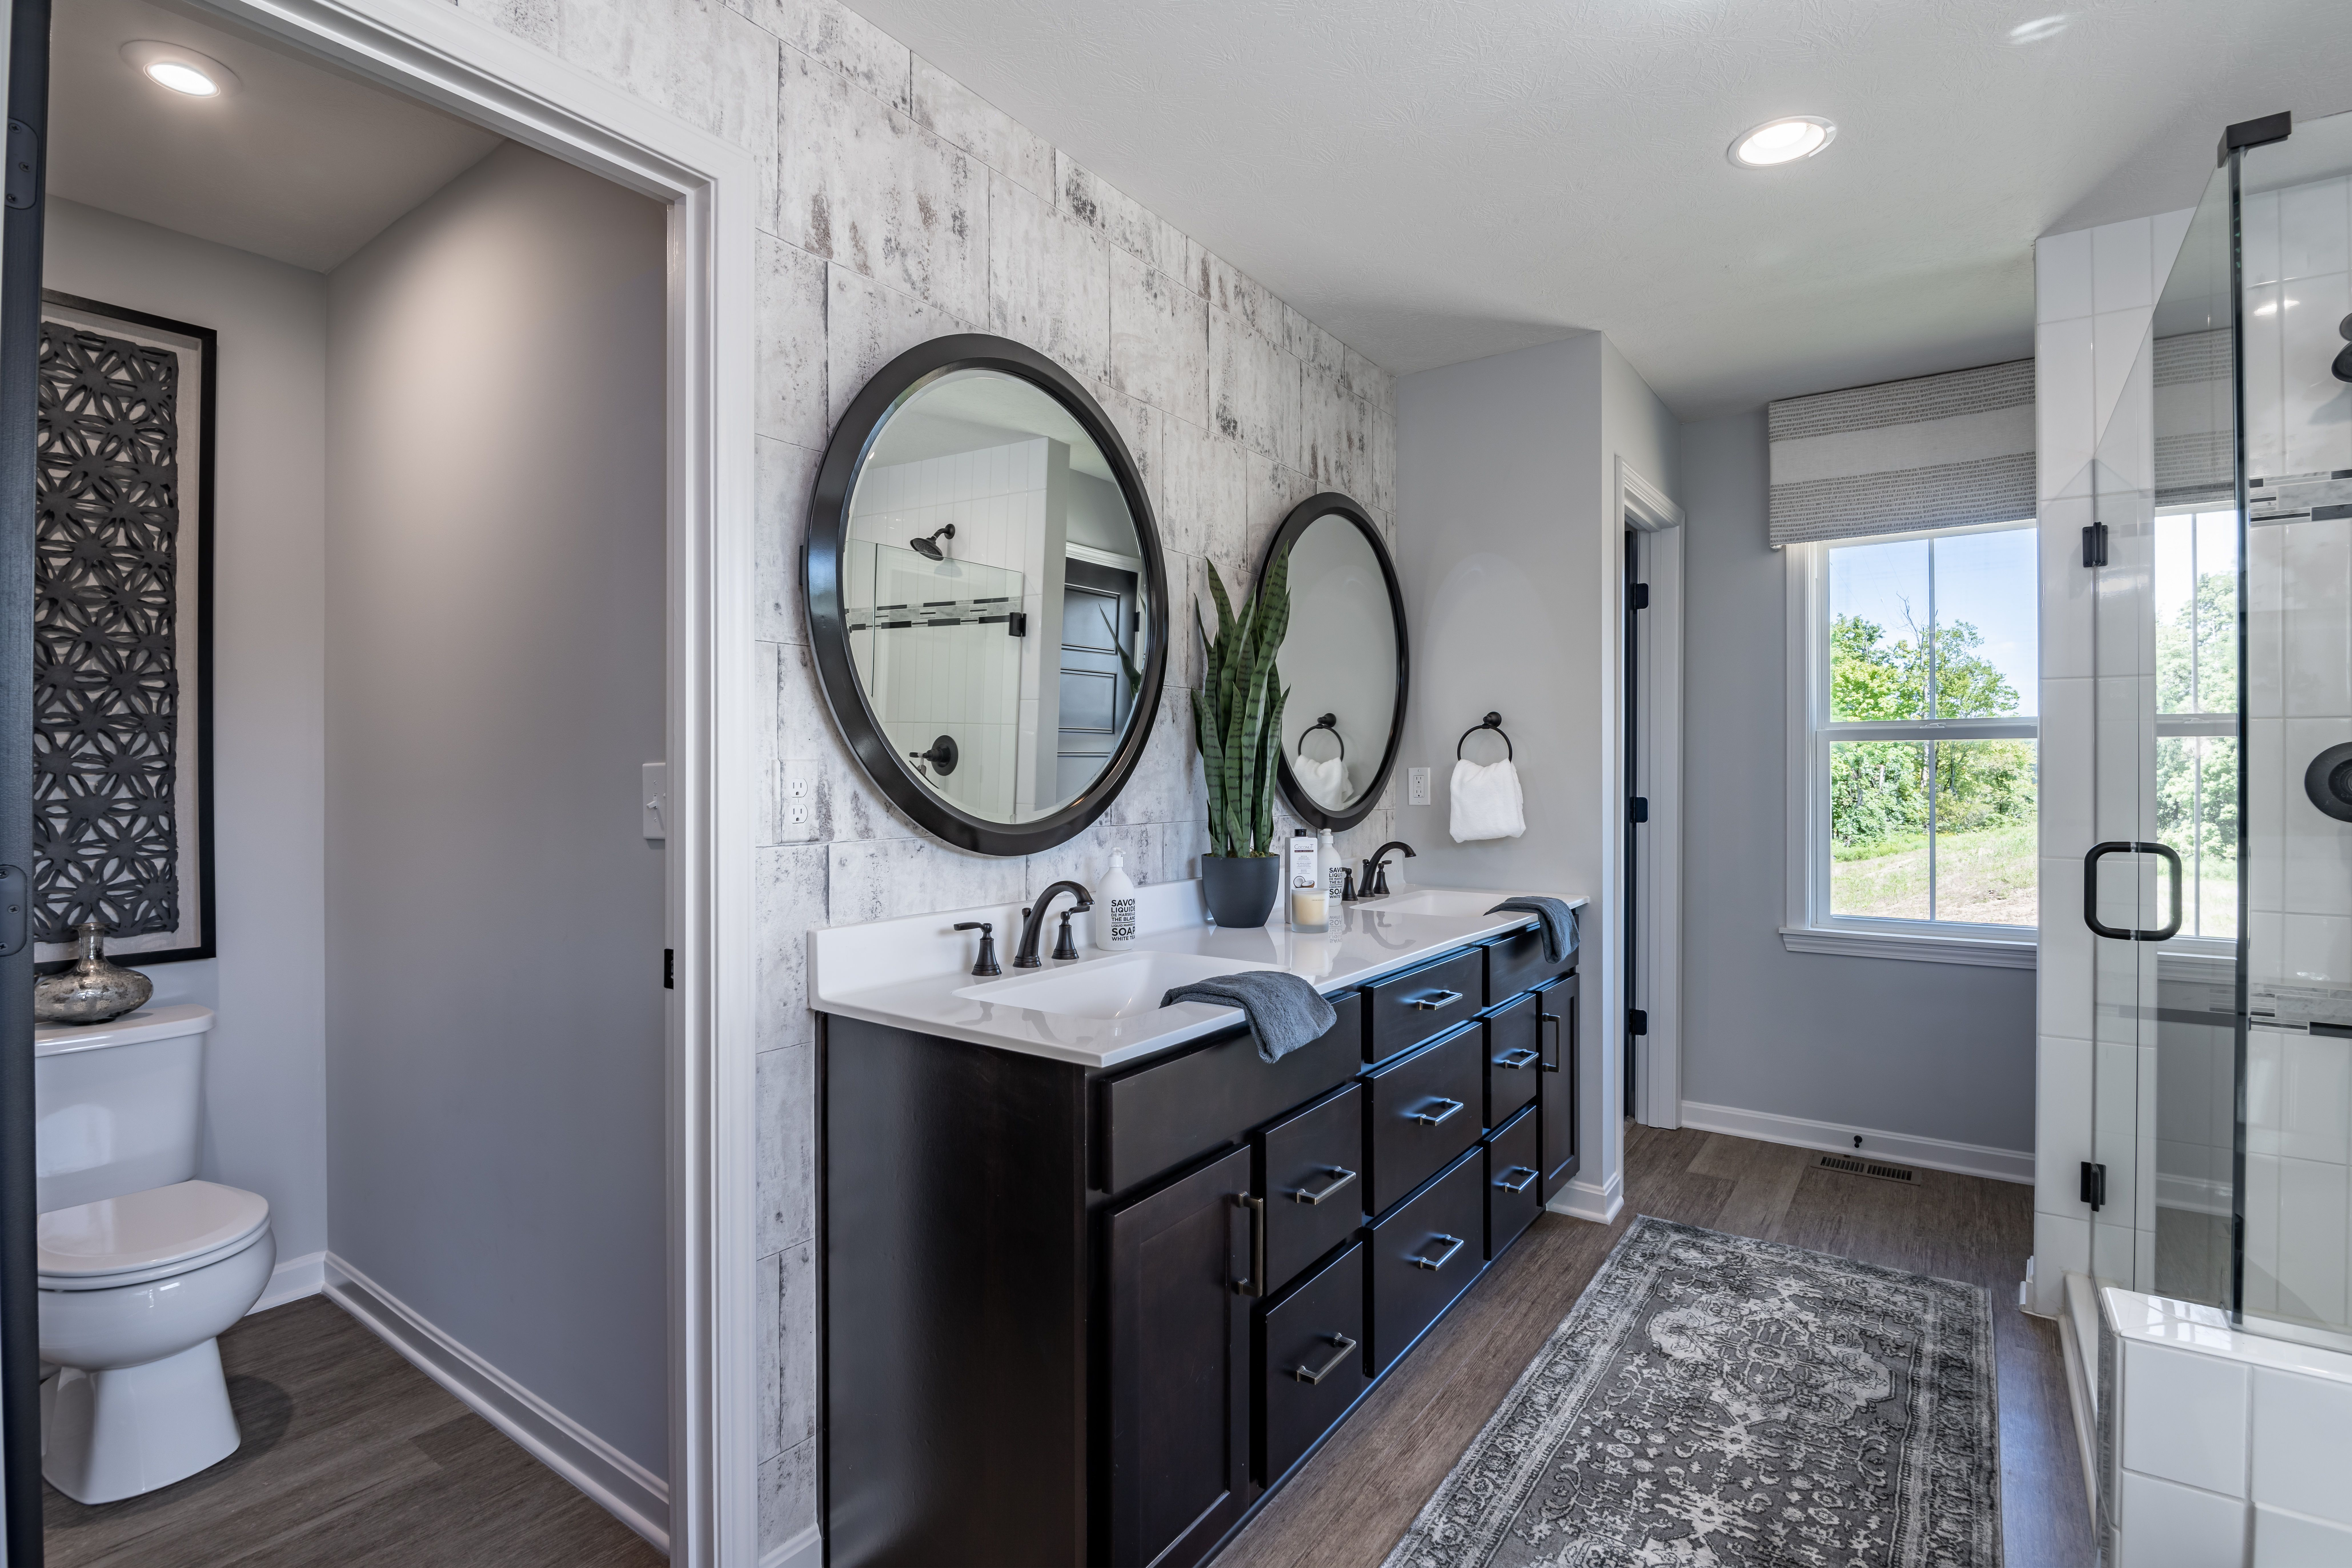 Bathroom featured in the Wyatt By Fischer Homes  in Louisville, KY